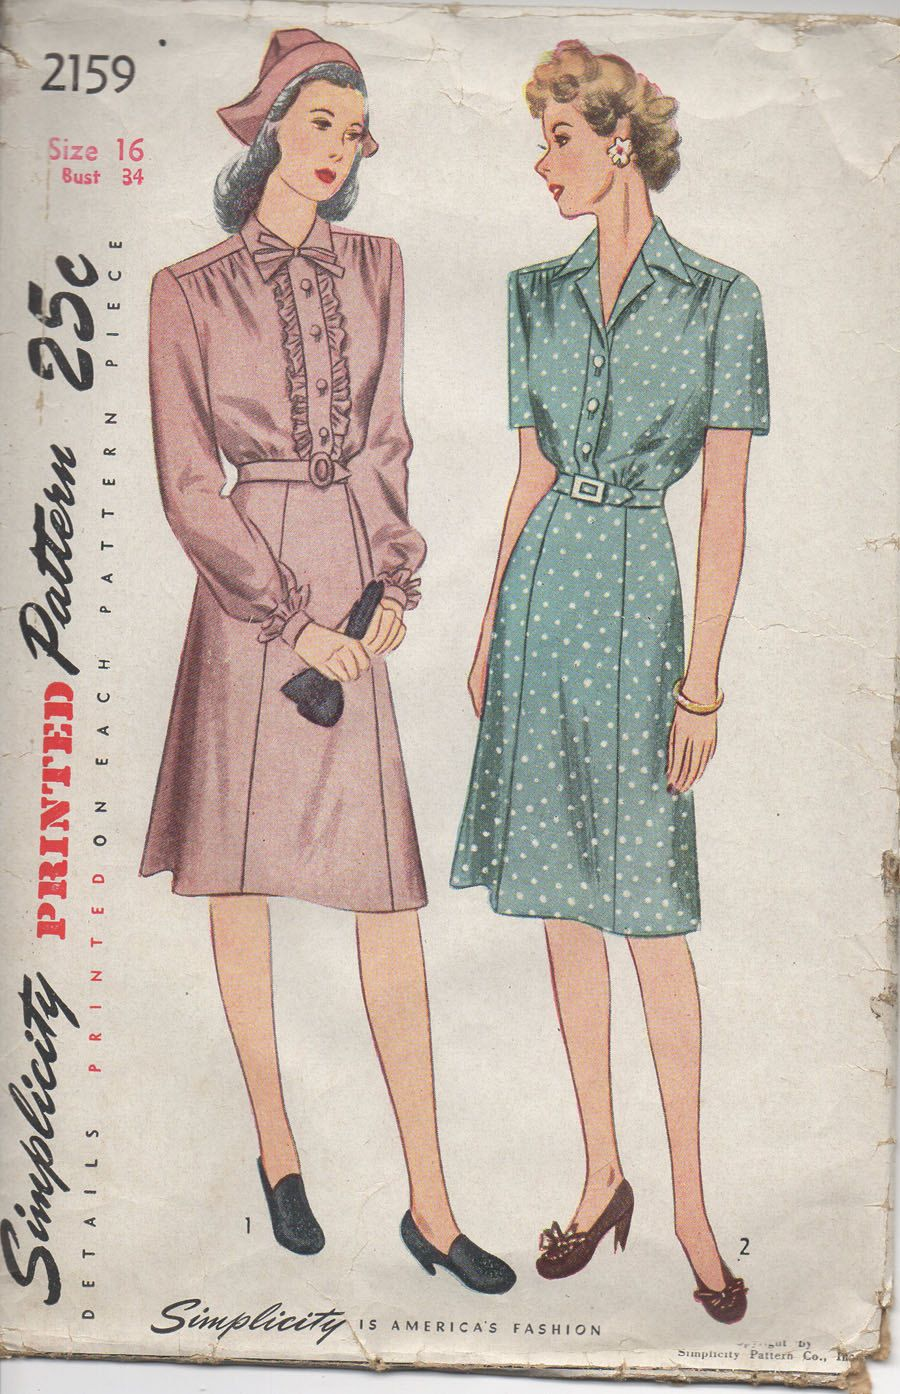 Simplicity 2159 1940 S Day Dress By Seamssustainable On Etsy Simplicity Patterns Dresses One Piece Dress Pattern Dress Women